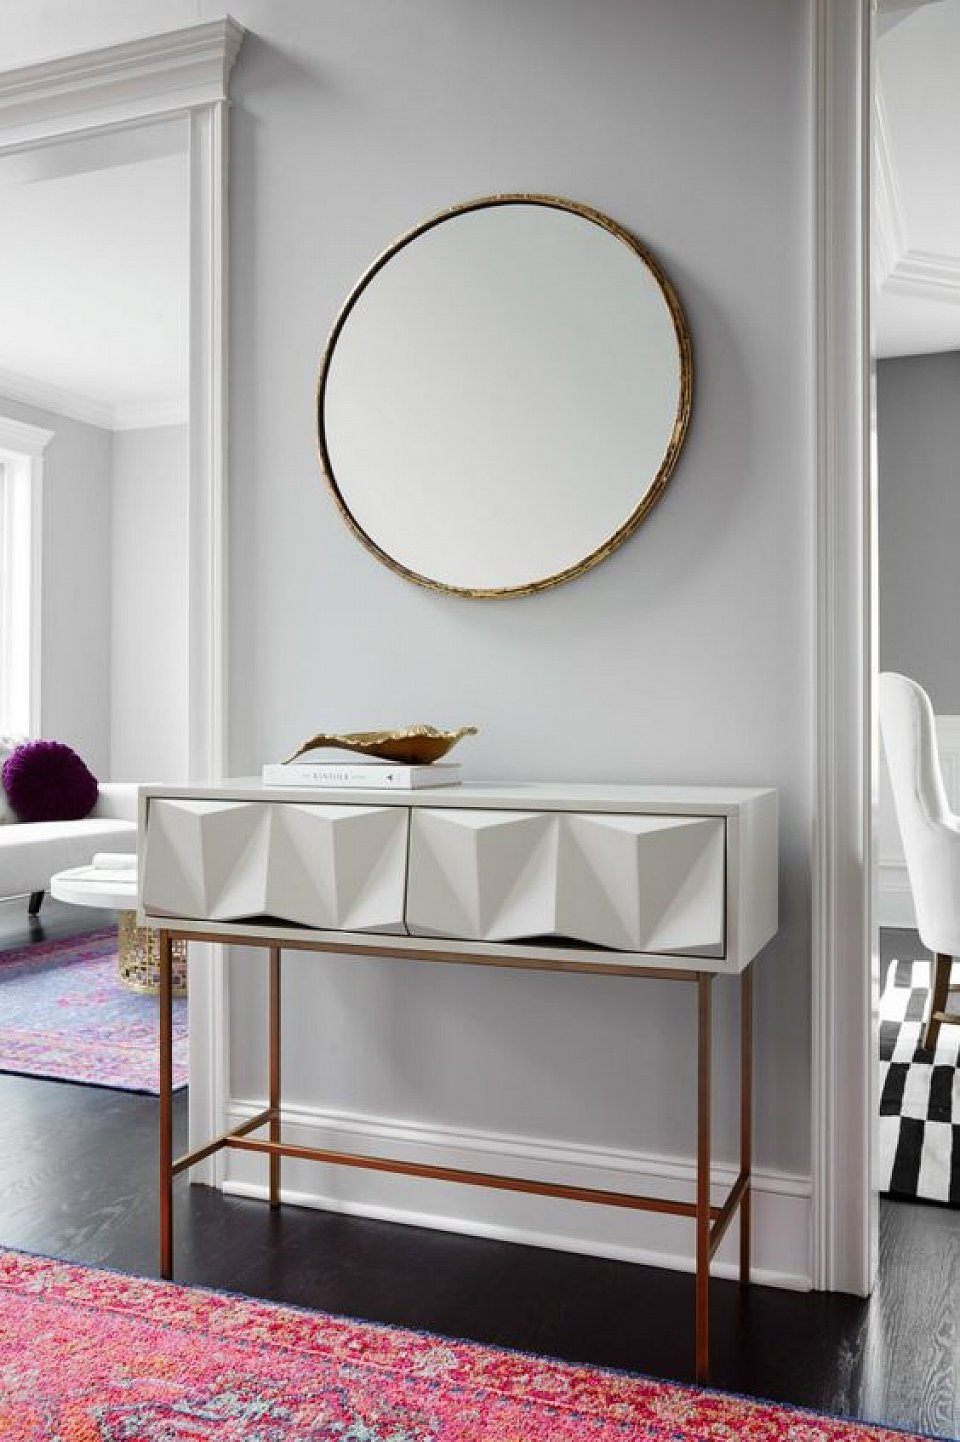 unique design Discover 10 Console Tables With A Daring Unique Design 8 Discover 10 Console Tables With A Daring Unique Design